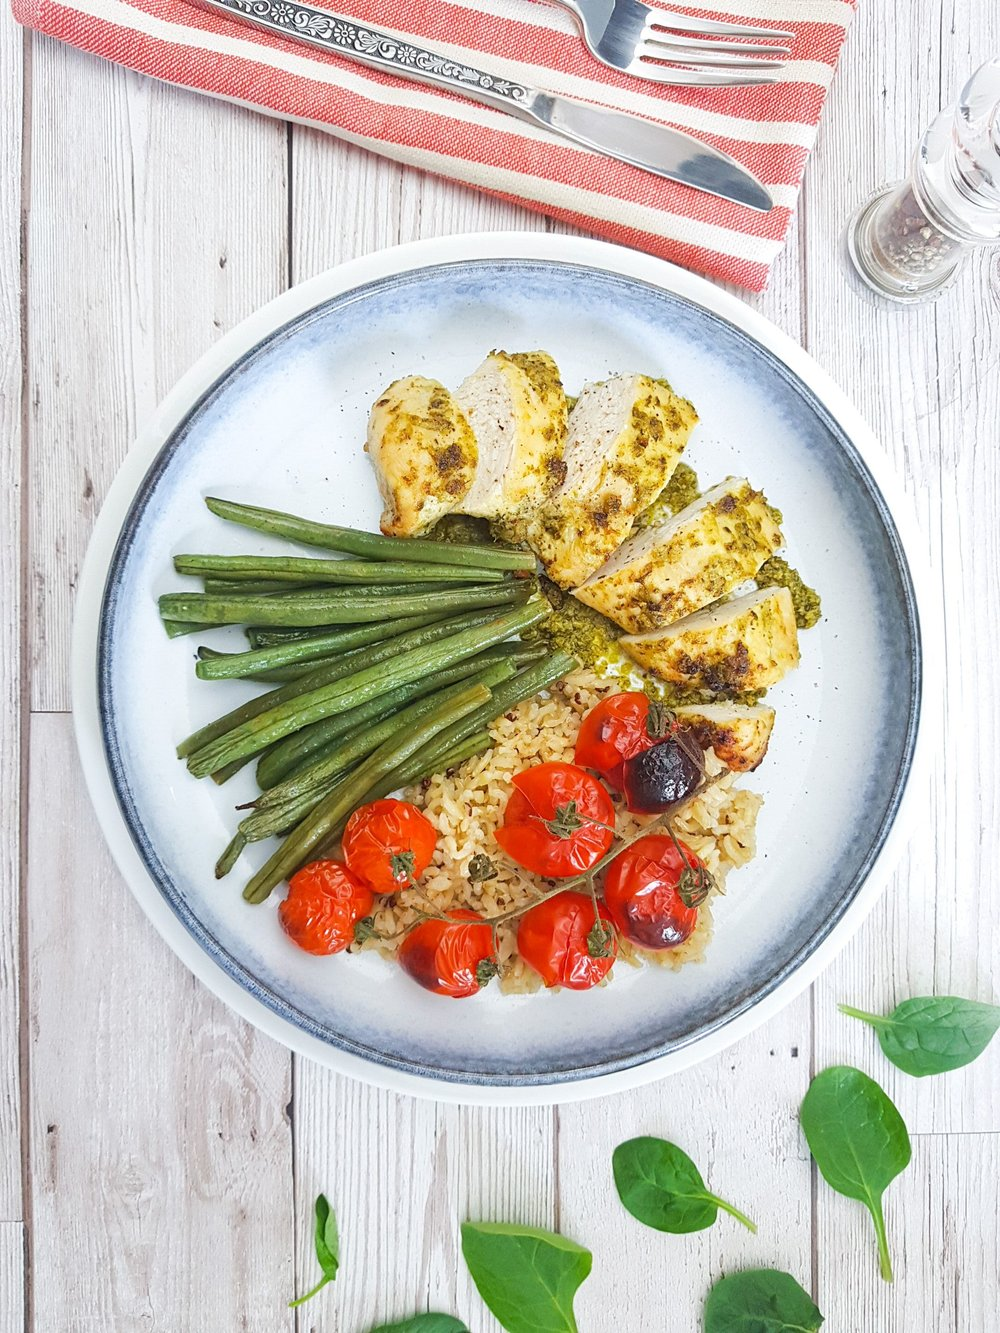 pesto-chicken-green-beans-roast-tomatoes-brown-rice-quick-healthy-easy-dinner-cheap-eat-recipe-dinner-limahl-asmall-tiny-budget-cooking